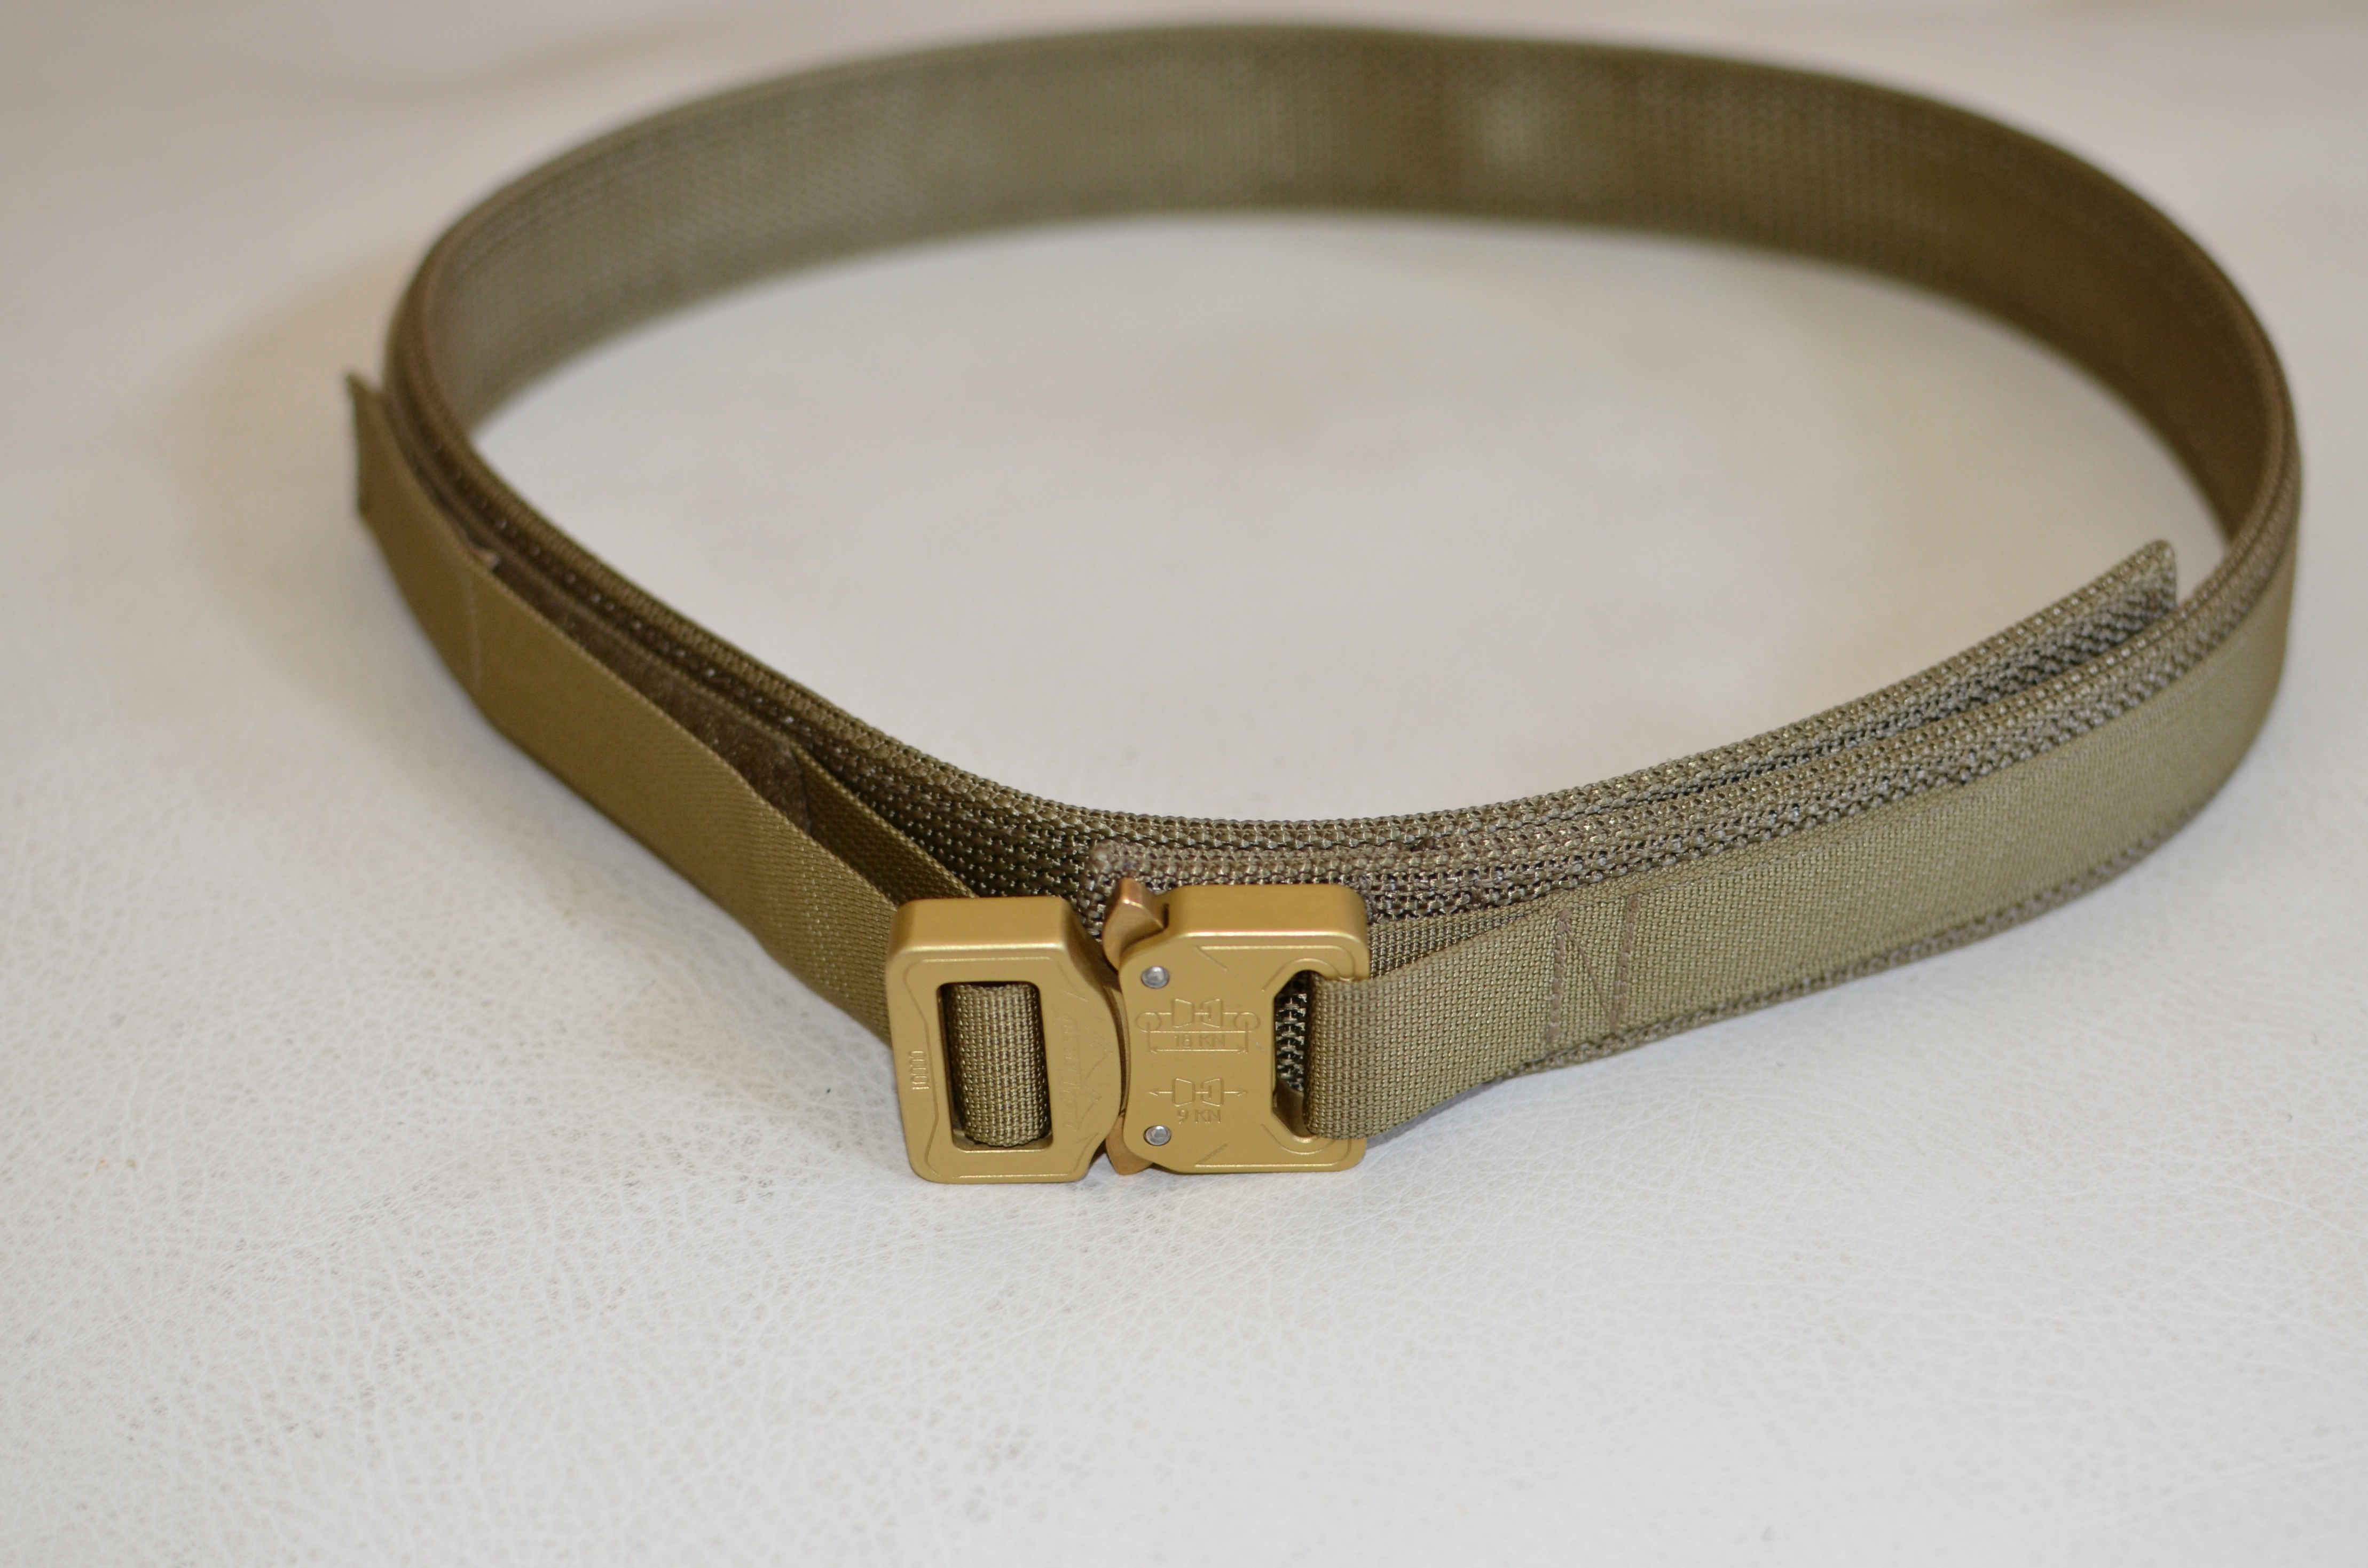 S.O.E. E.D.C. Every Day Carry Belt COYOTE Non-Velcro Lining